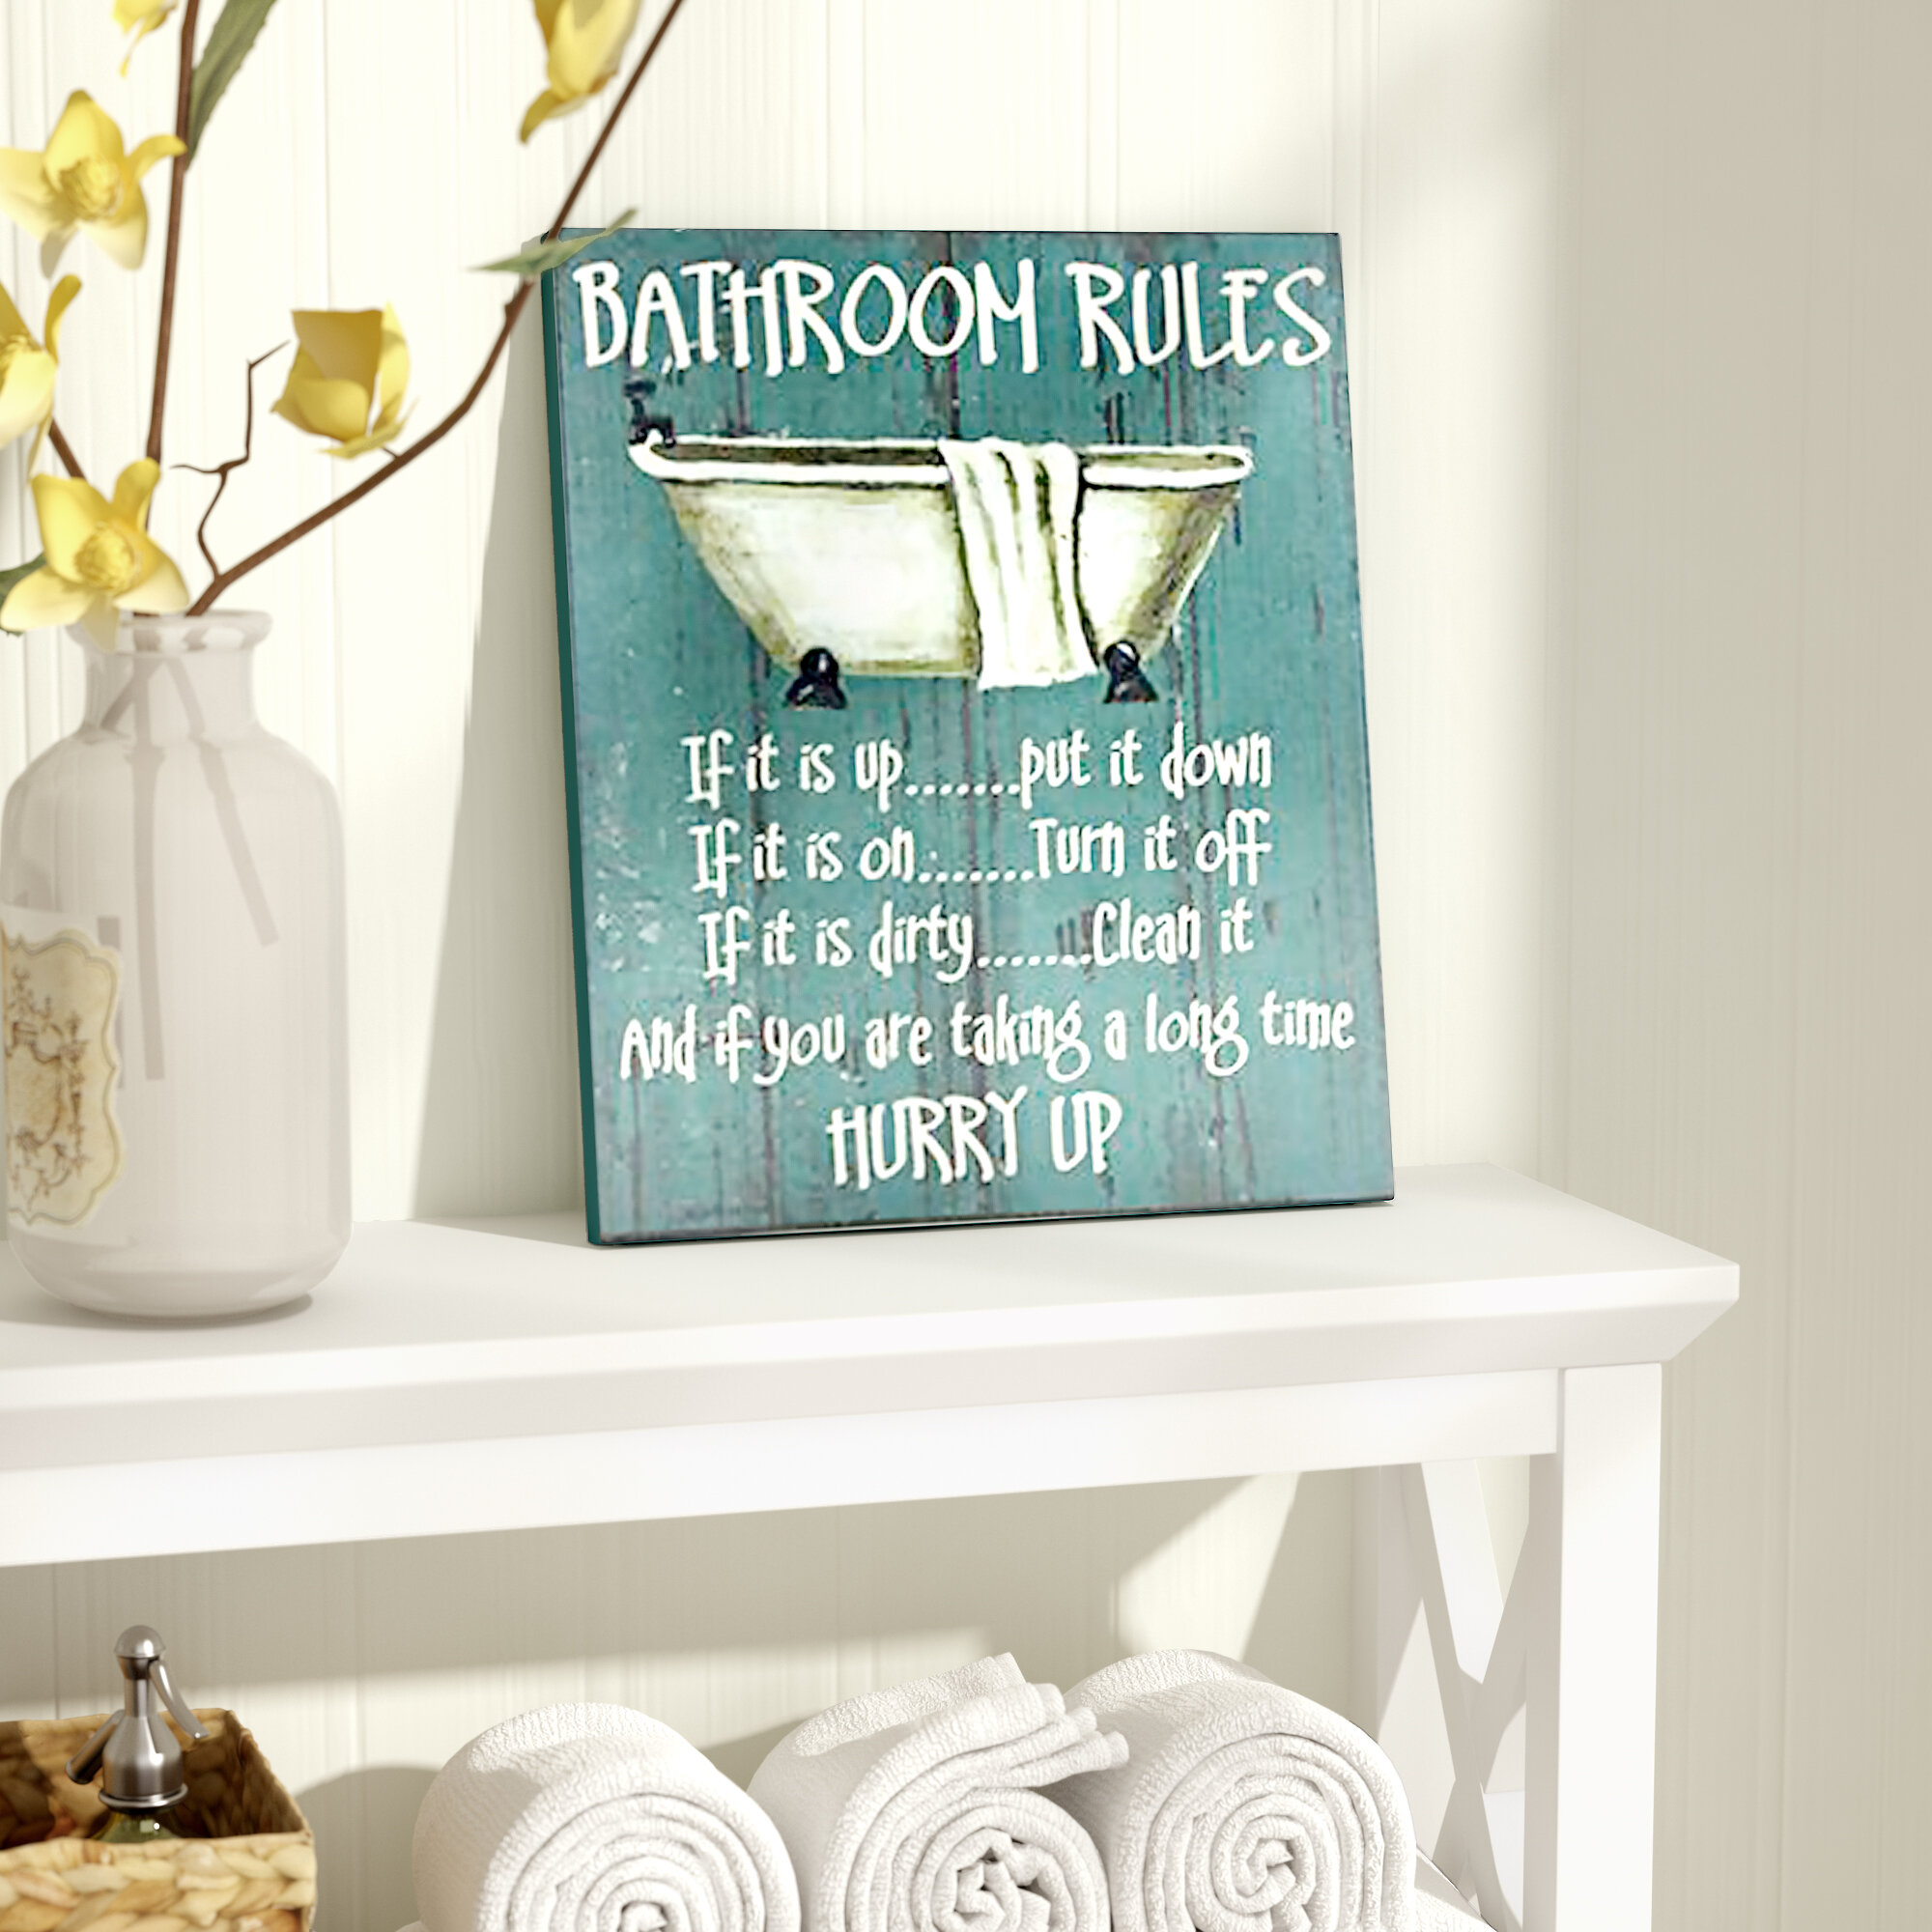 August grove bathroom rules textual art reviews wayfair for Wayfair home decor canada